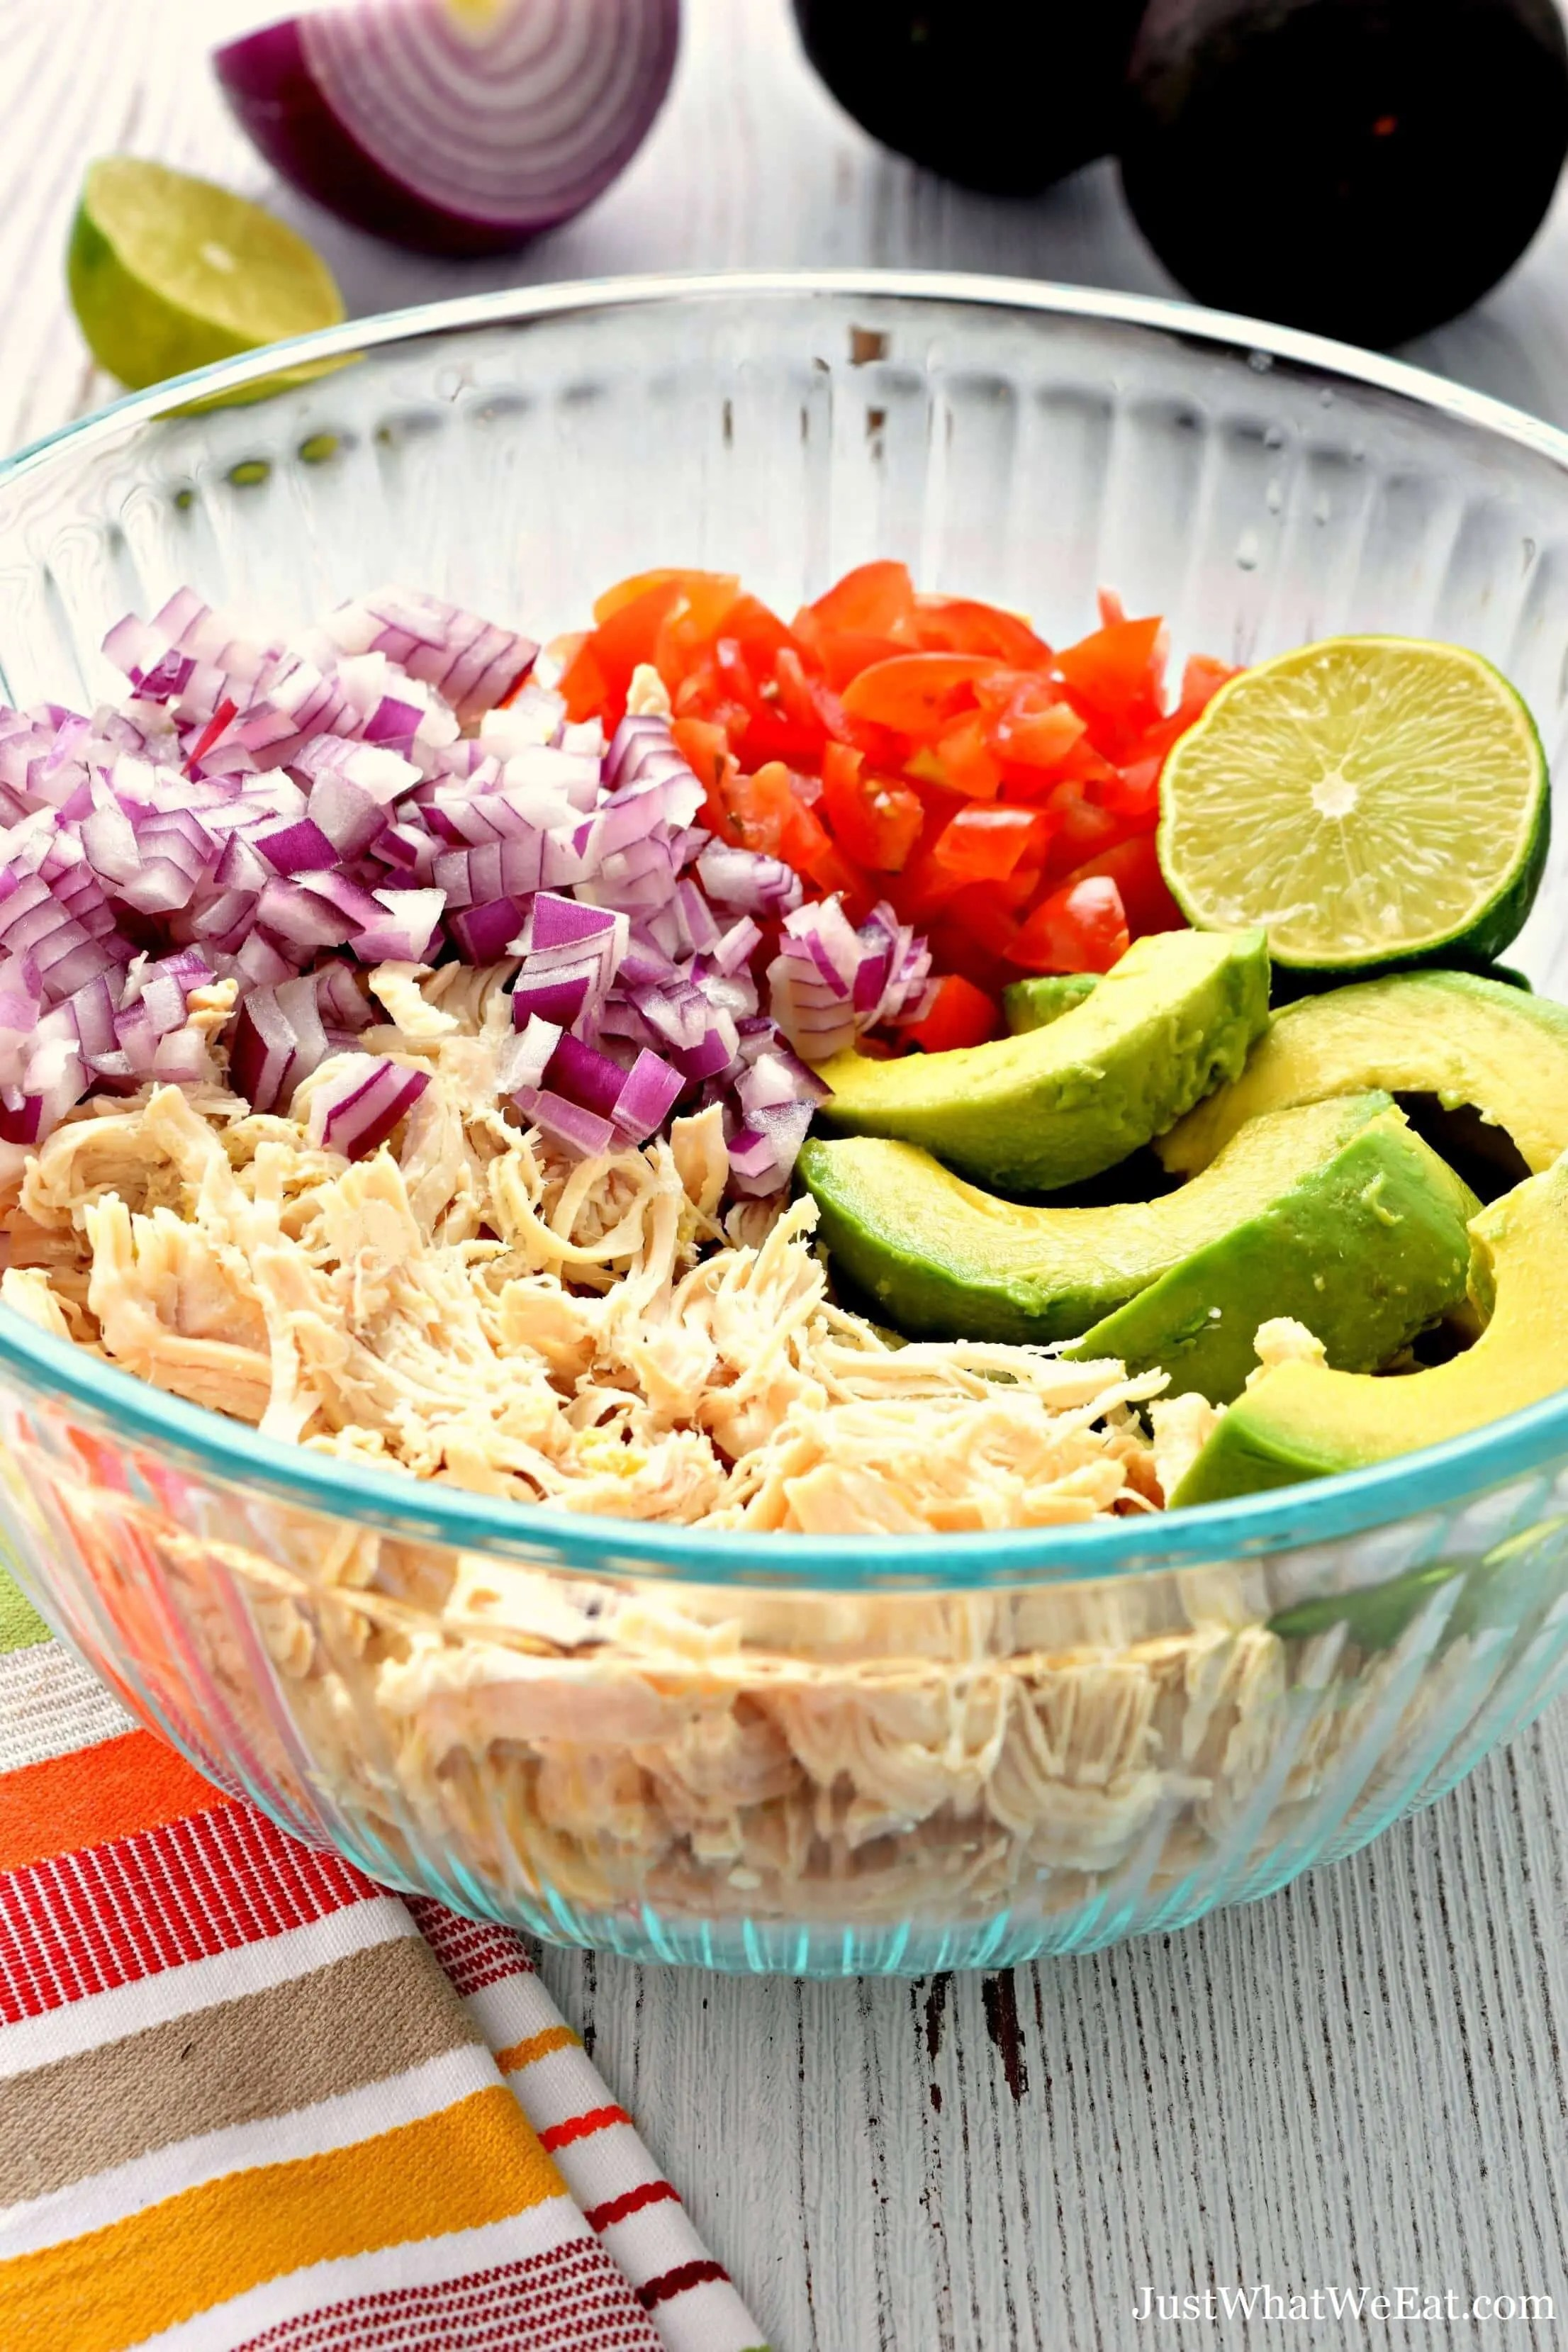 Gluten Free, Dairy Free, and Vegan Avocado Chicken Salad